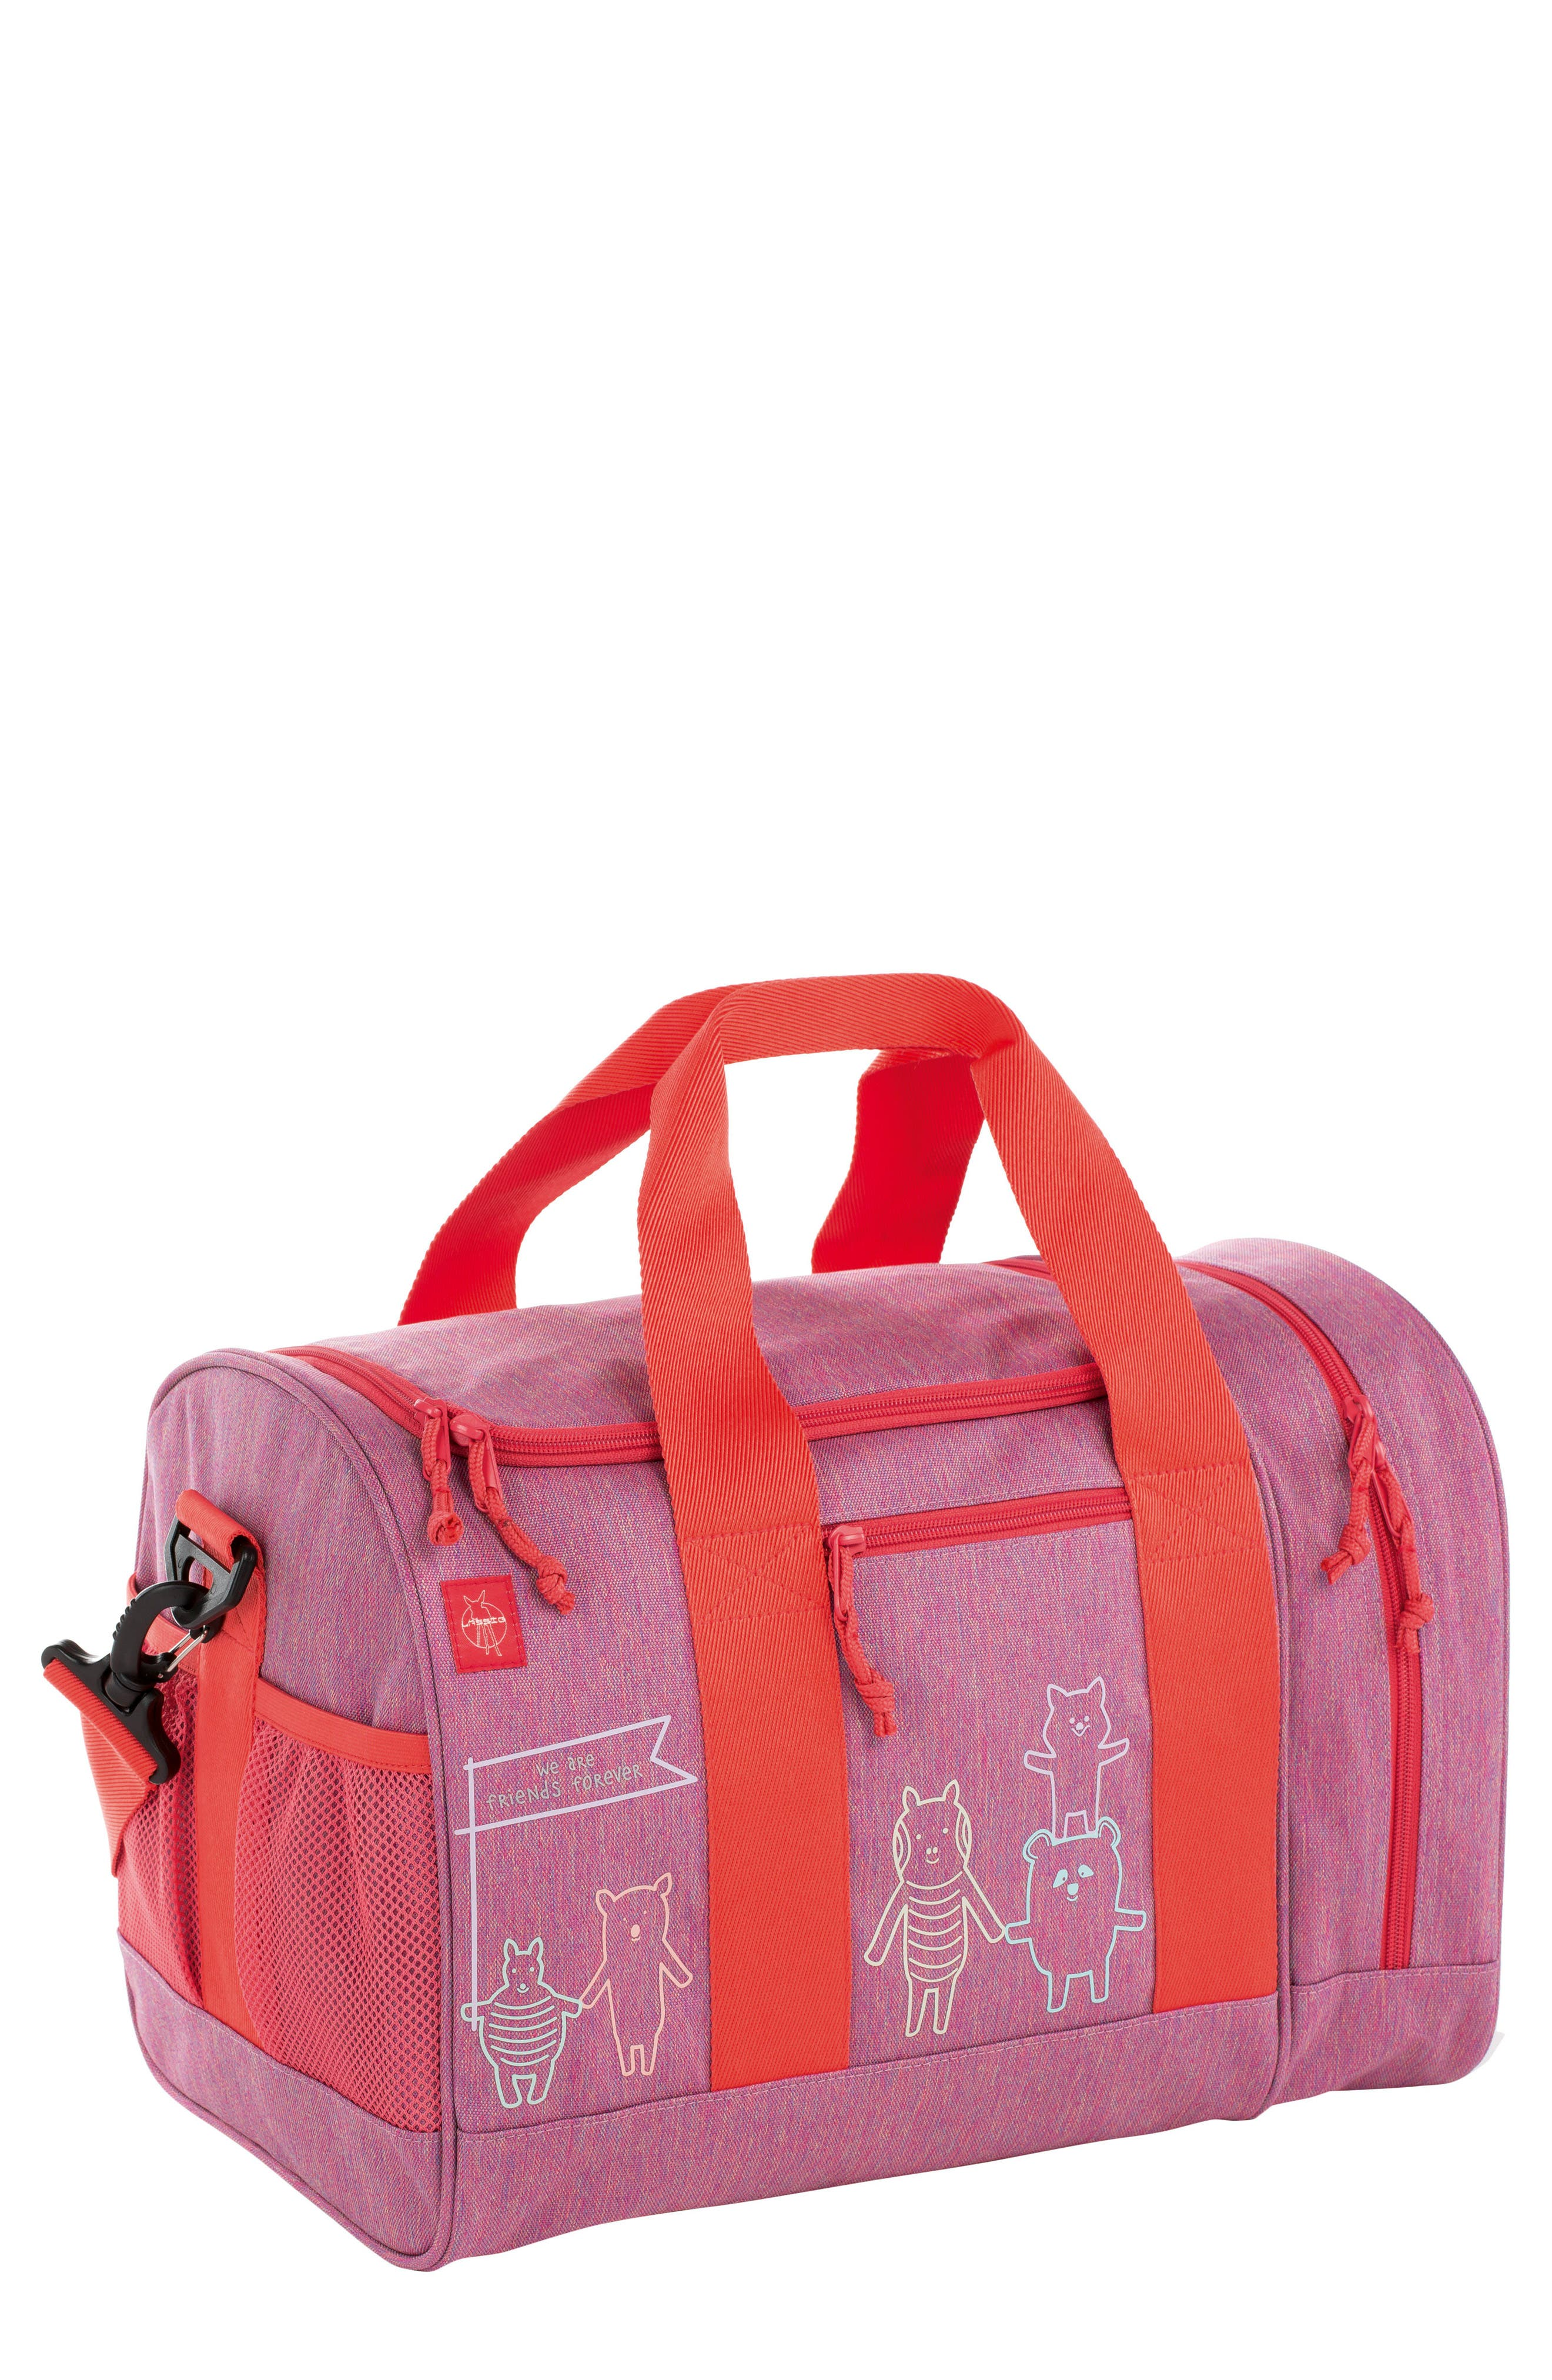 Mini About Friends Duffel Bag,                         Main,                         color, Melange Pink